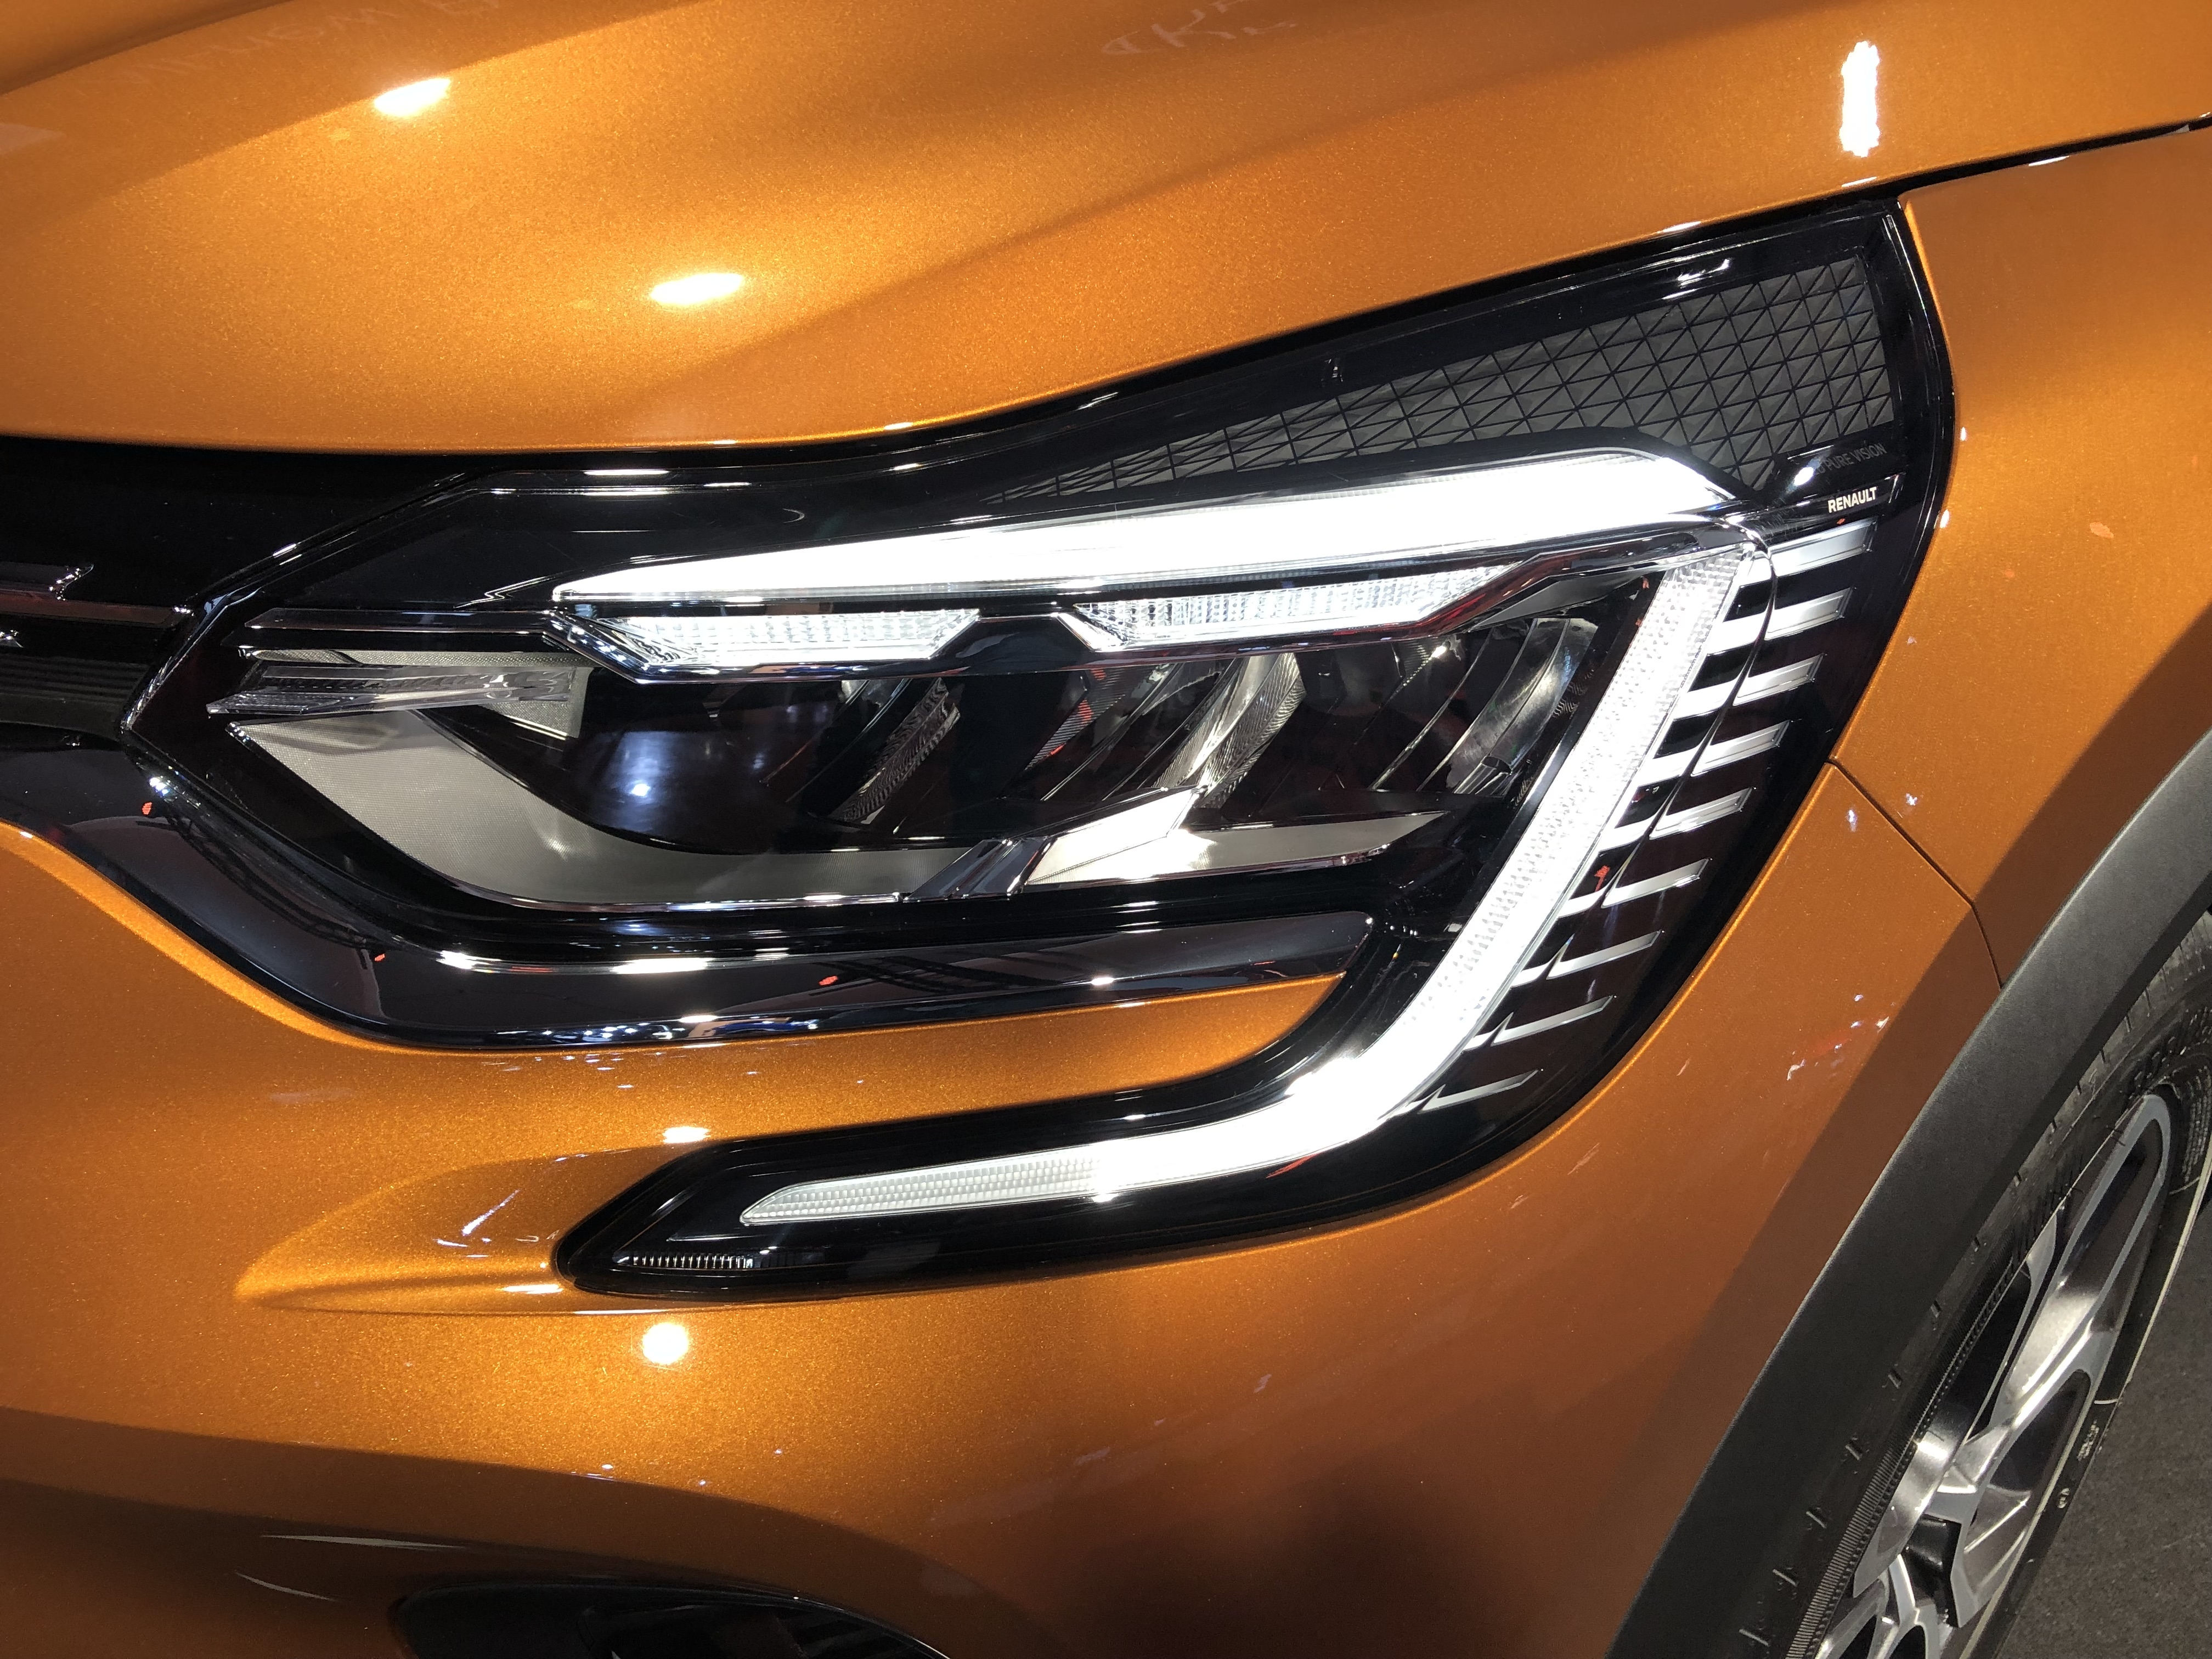 2019 - [Renault]  Captur II [HJB]  - Page 26 S0-renault-captur-2-2019-plus-grand-et-plus-mature-presentation-video-602361